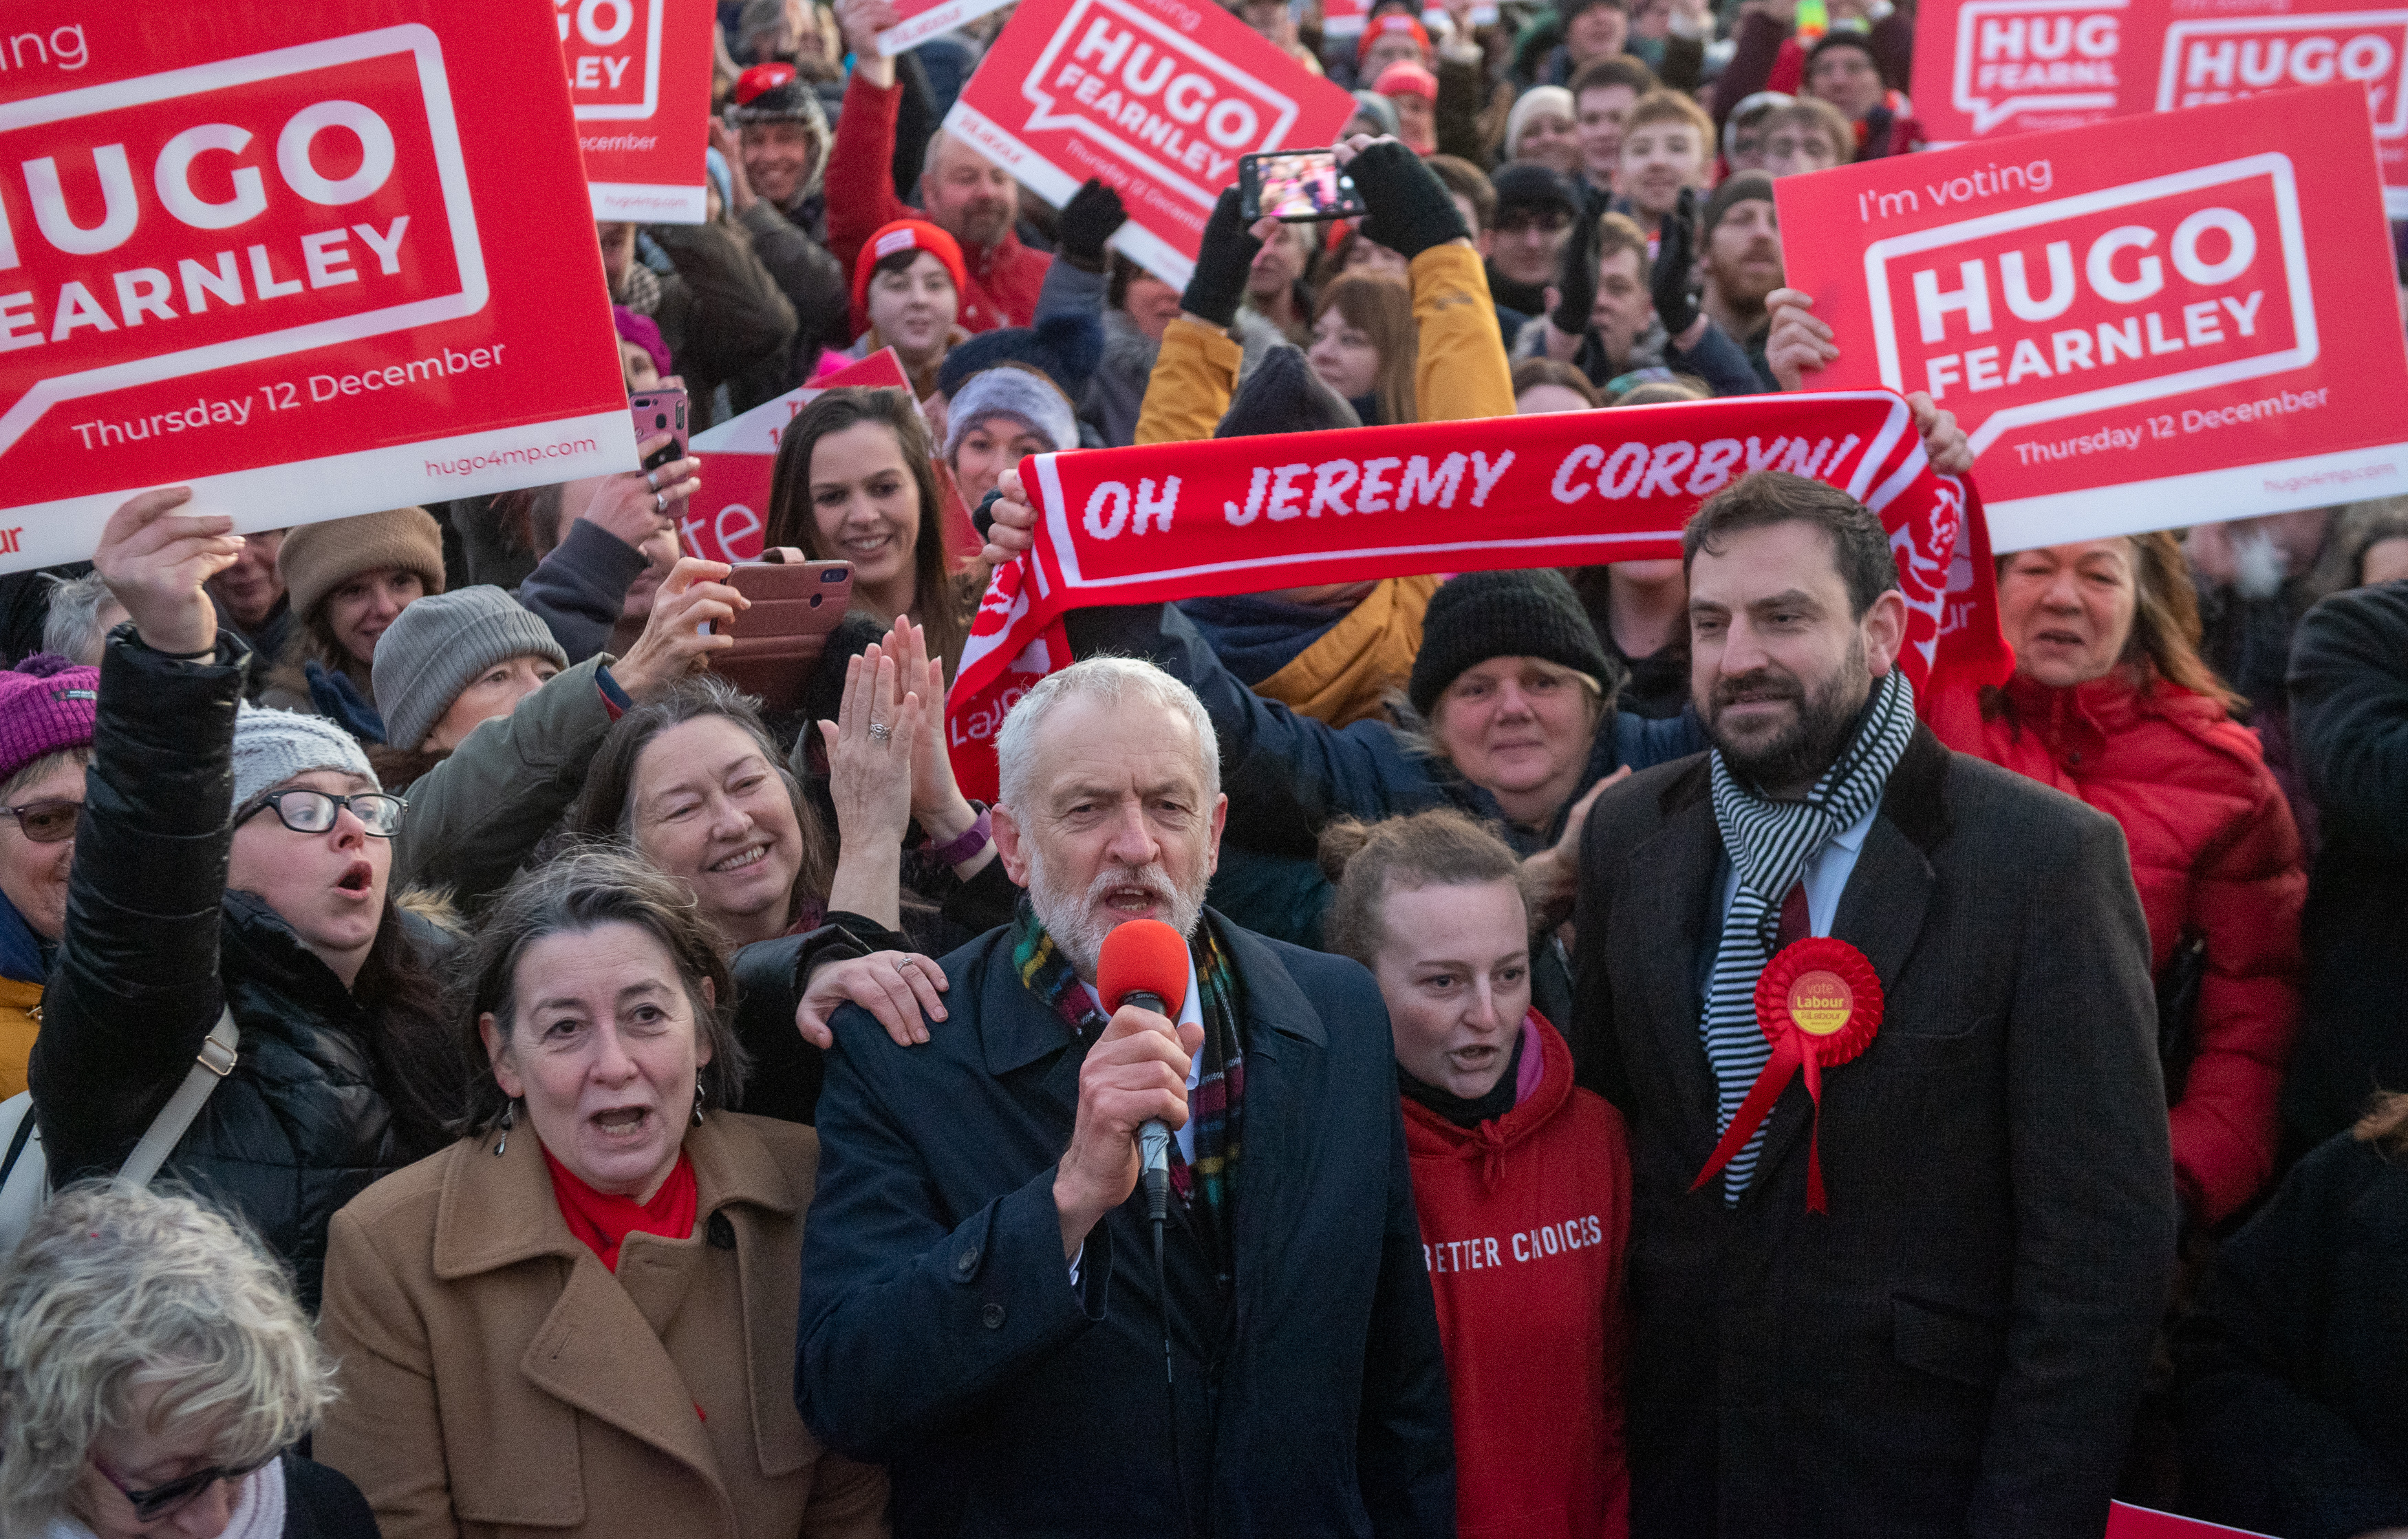 Labour Party leader Jeremy Corbyn and Labour parliamentary candidate for Scarborough and Whitby, Hugo Fearnley (right) during a rally in Whitby, while on the General Election campaign trail.